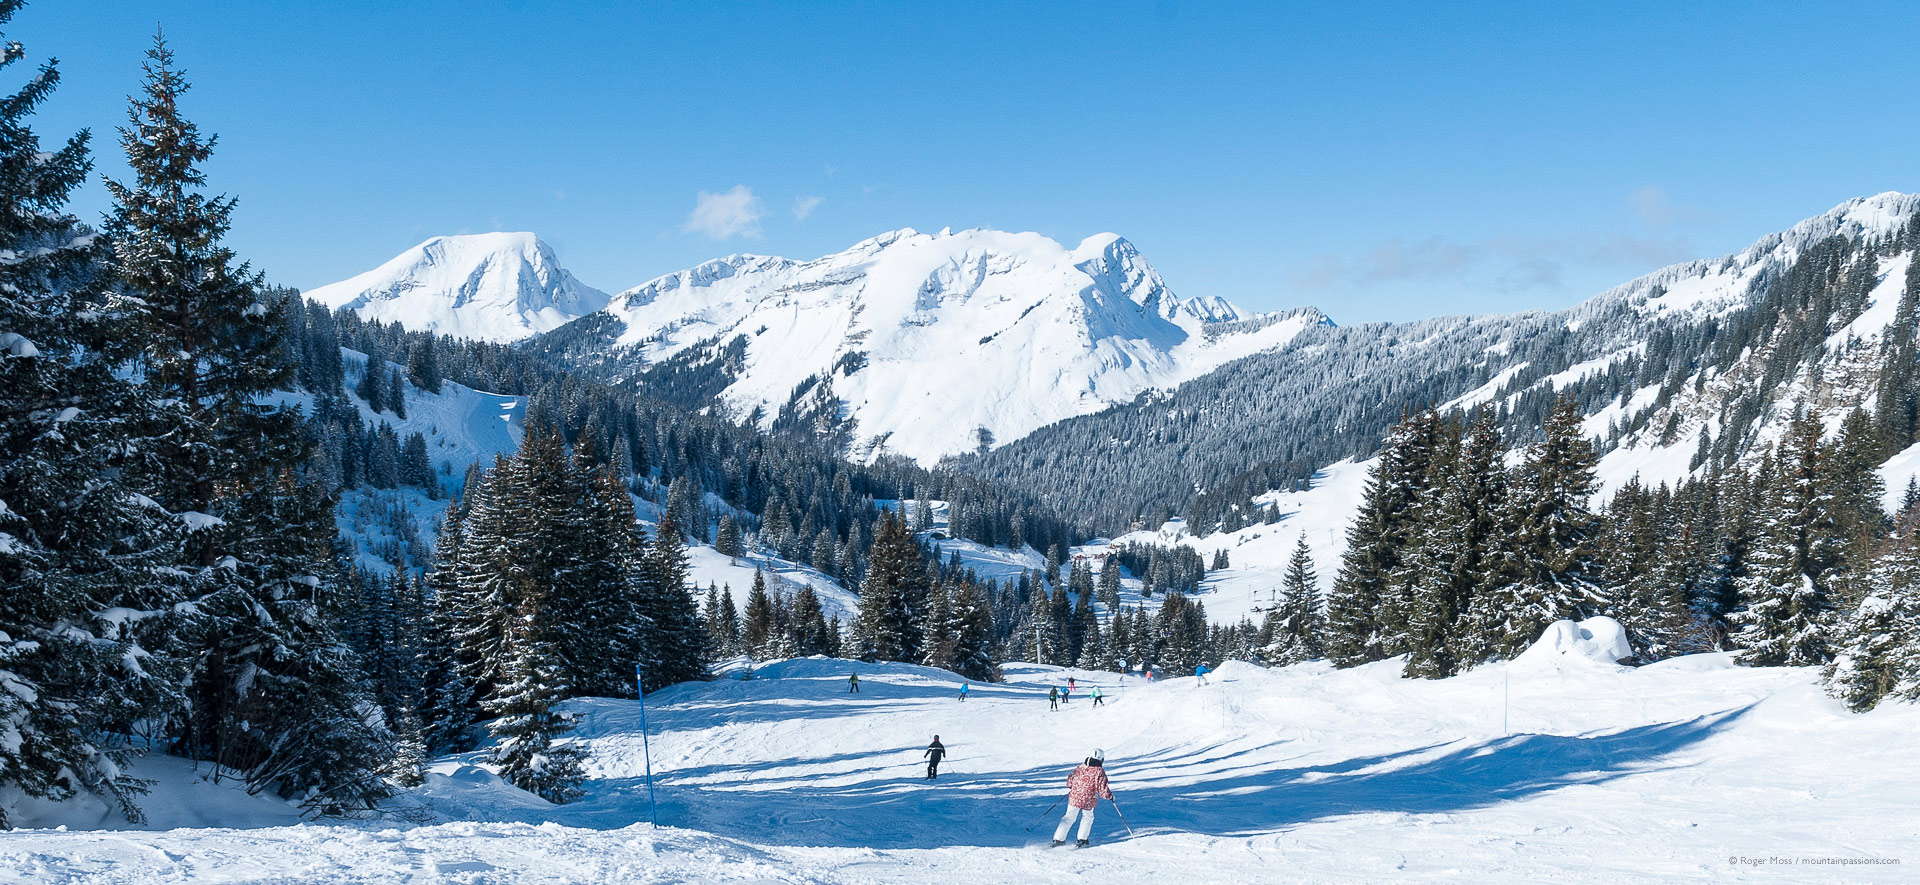 Skiers descending wide piste between trees with snowy mountain background.